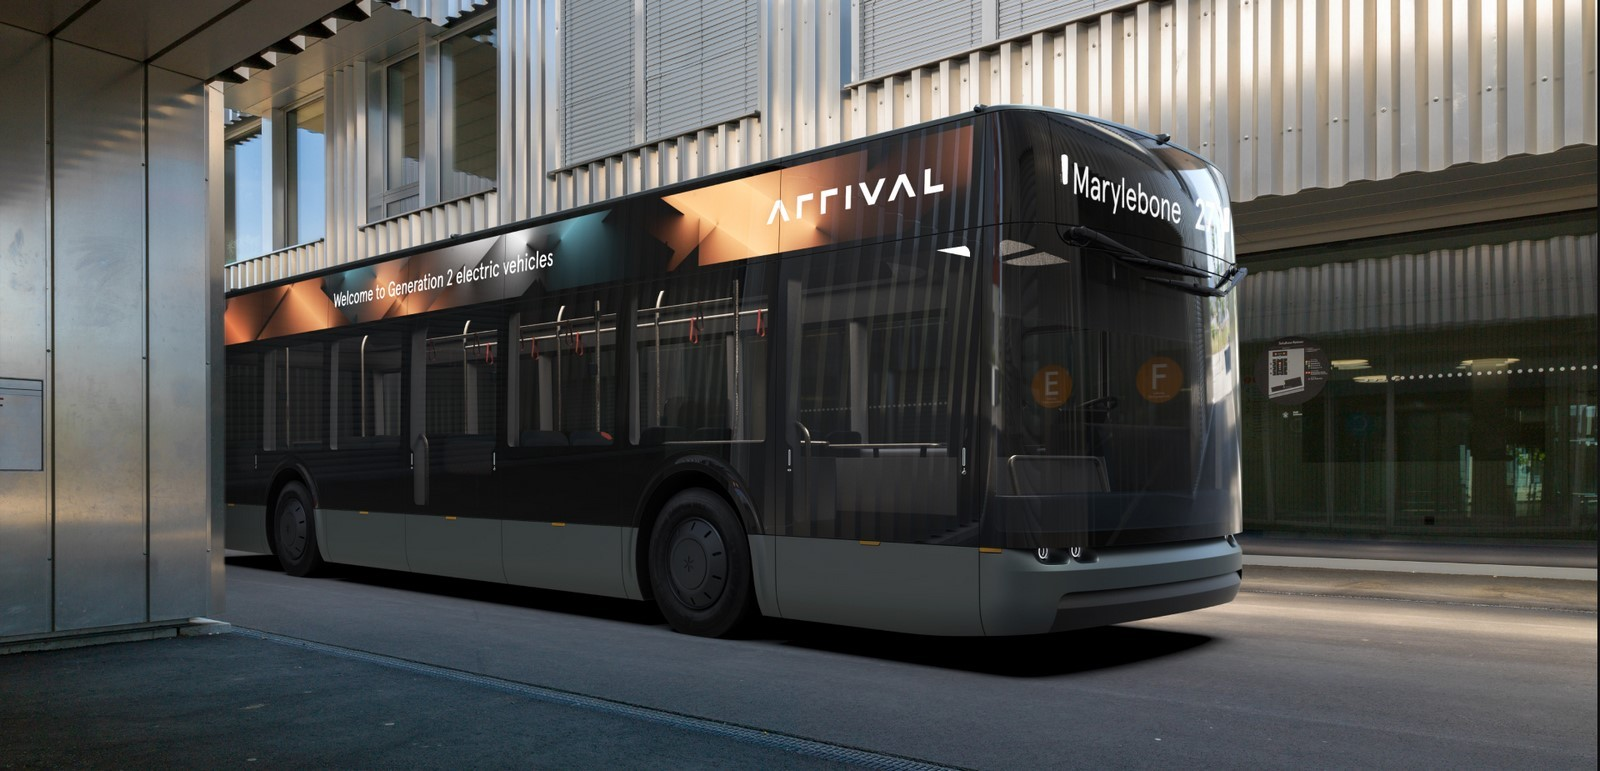 Arrival launches electric bus with features to help people travel safely following pandemic - Sheet1